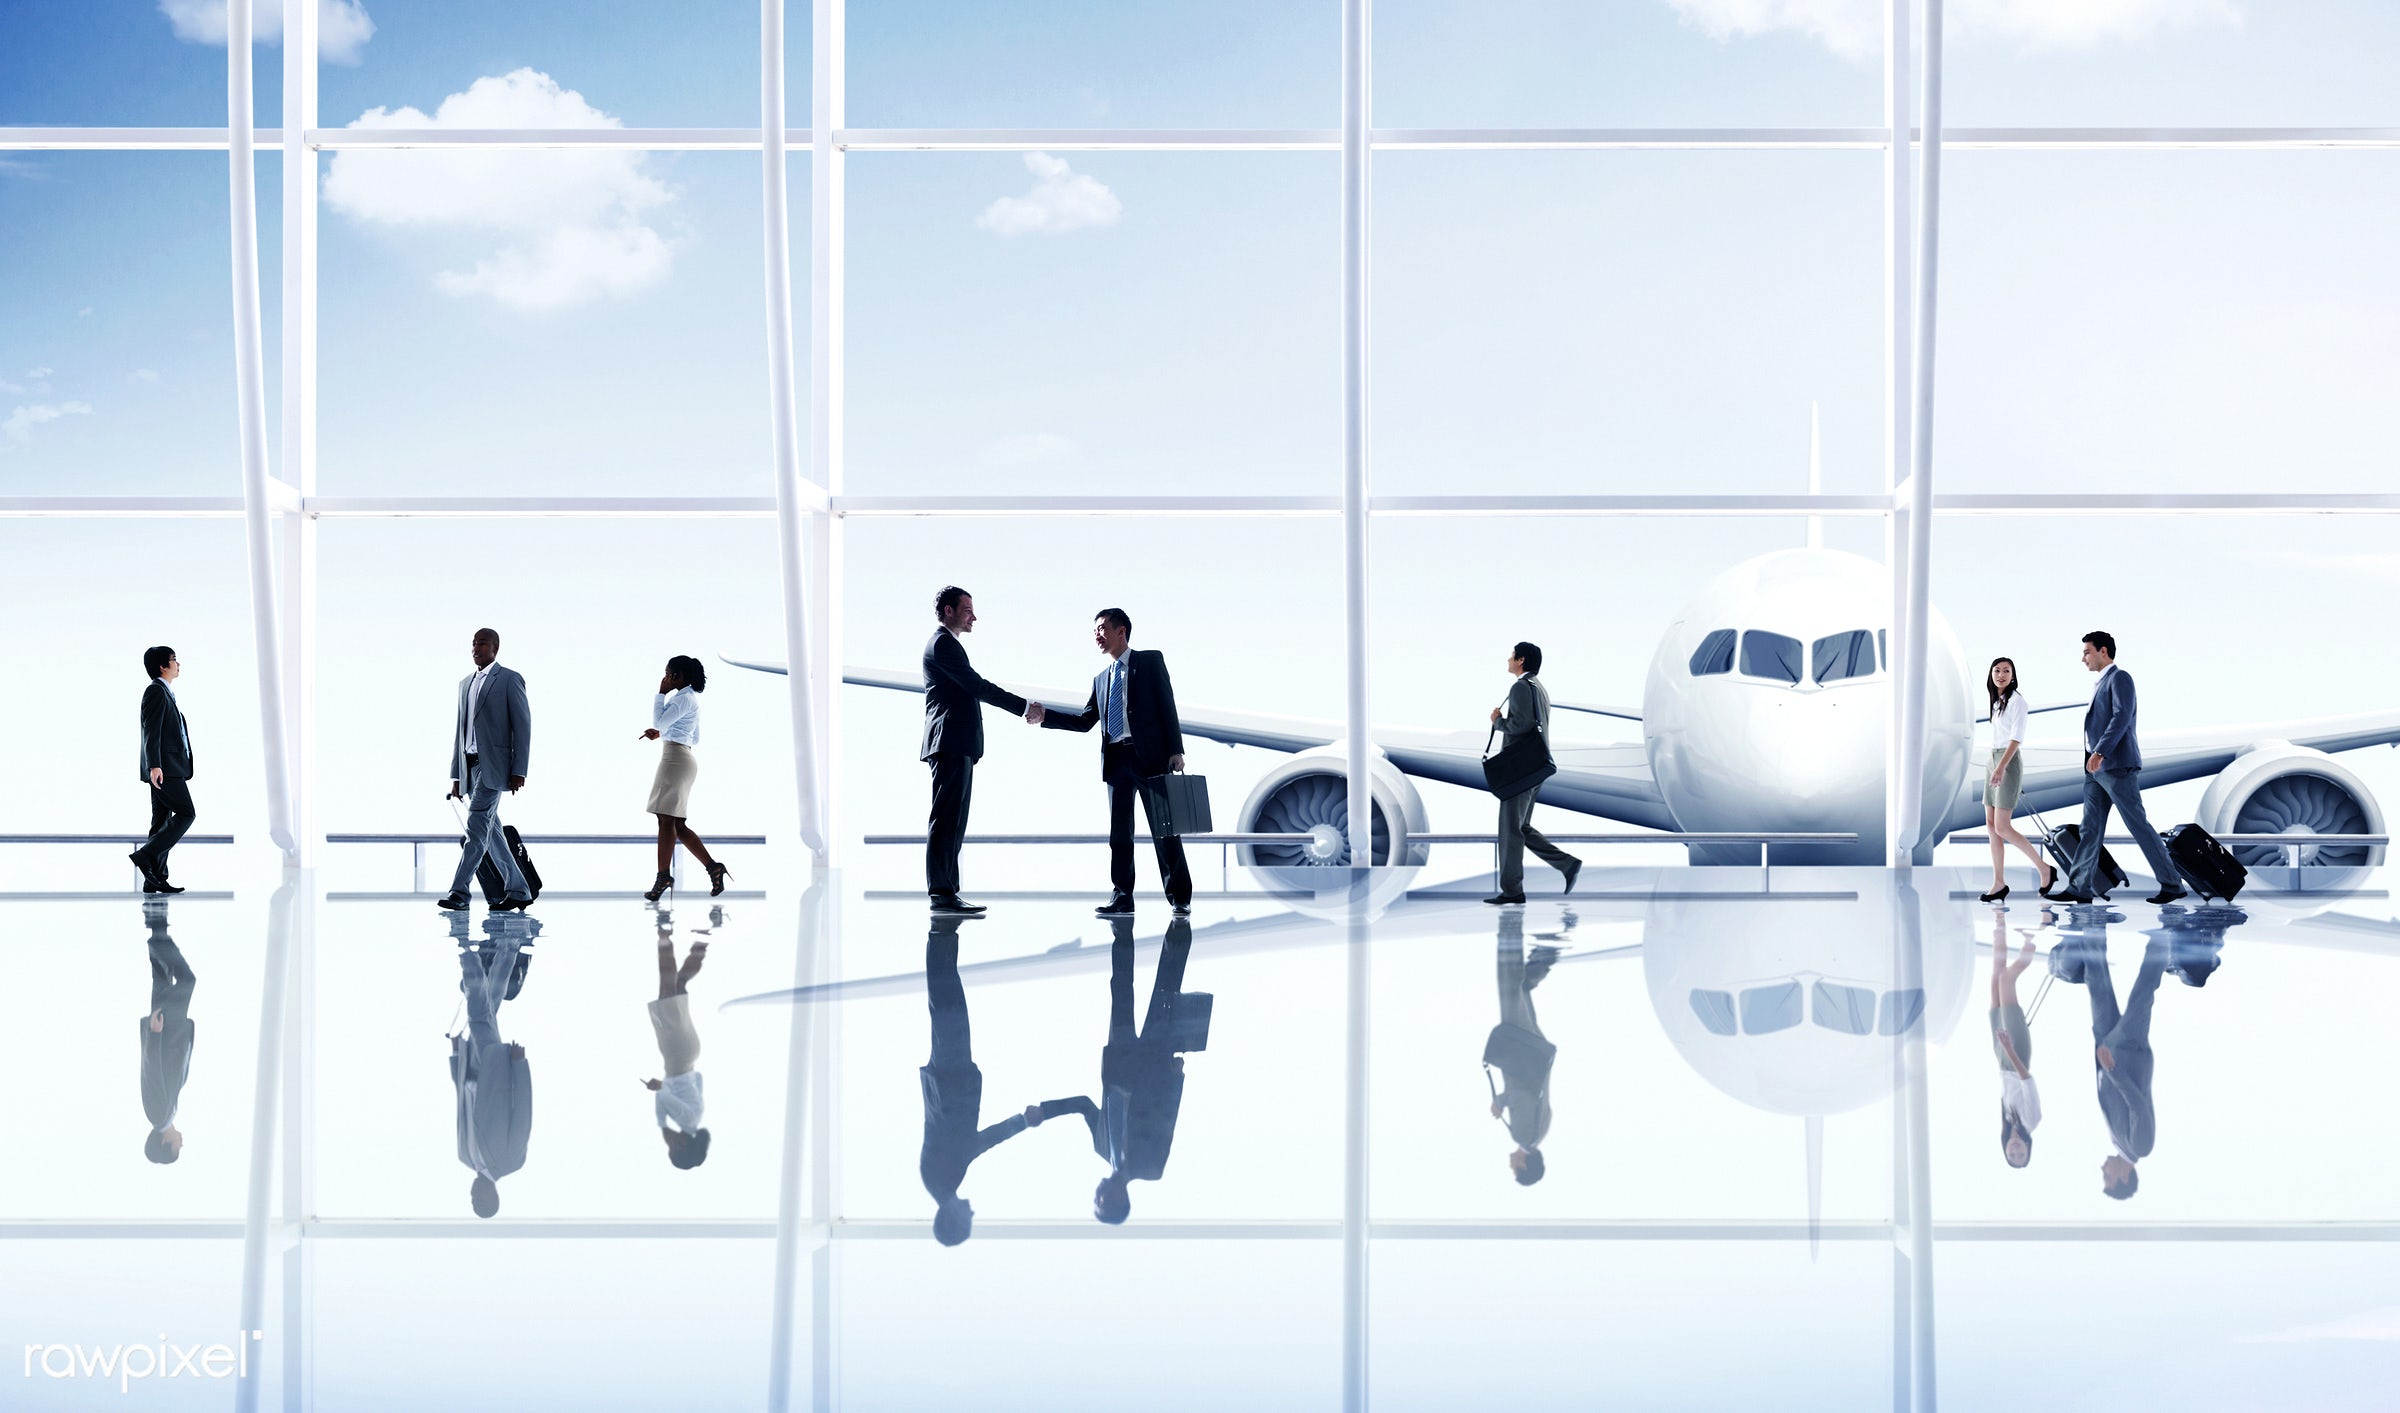 african, african descent, aircraft, airplane, airport, asian, asian ethnicity, business people, business travel, business...